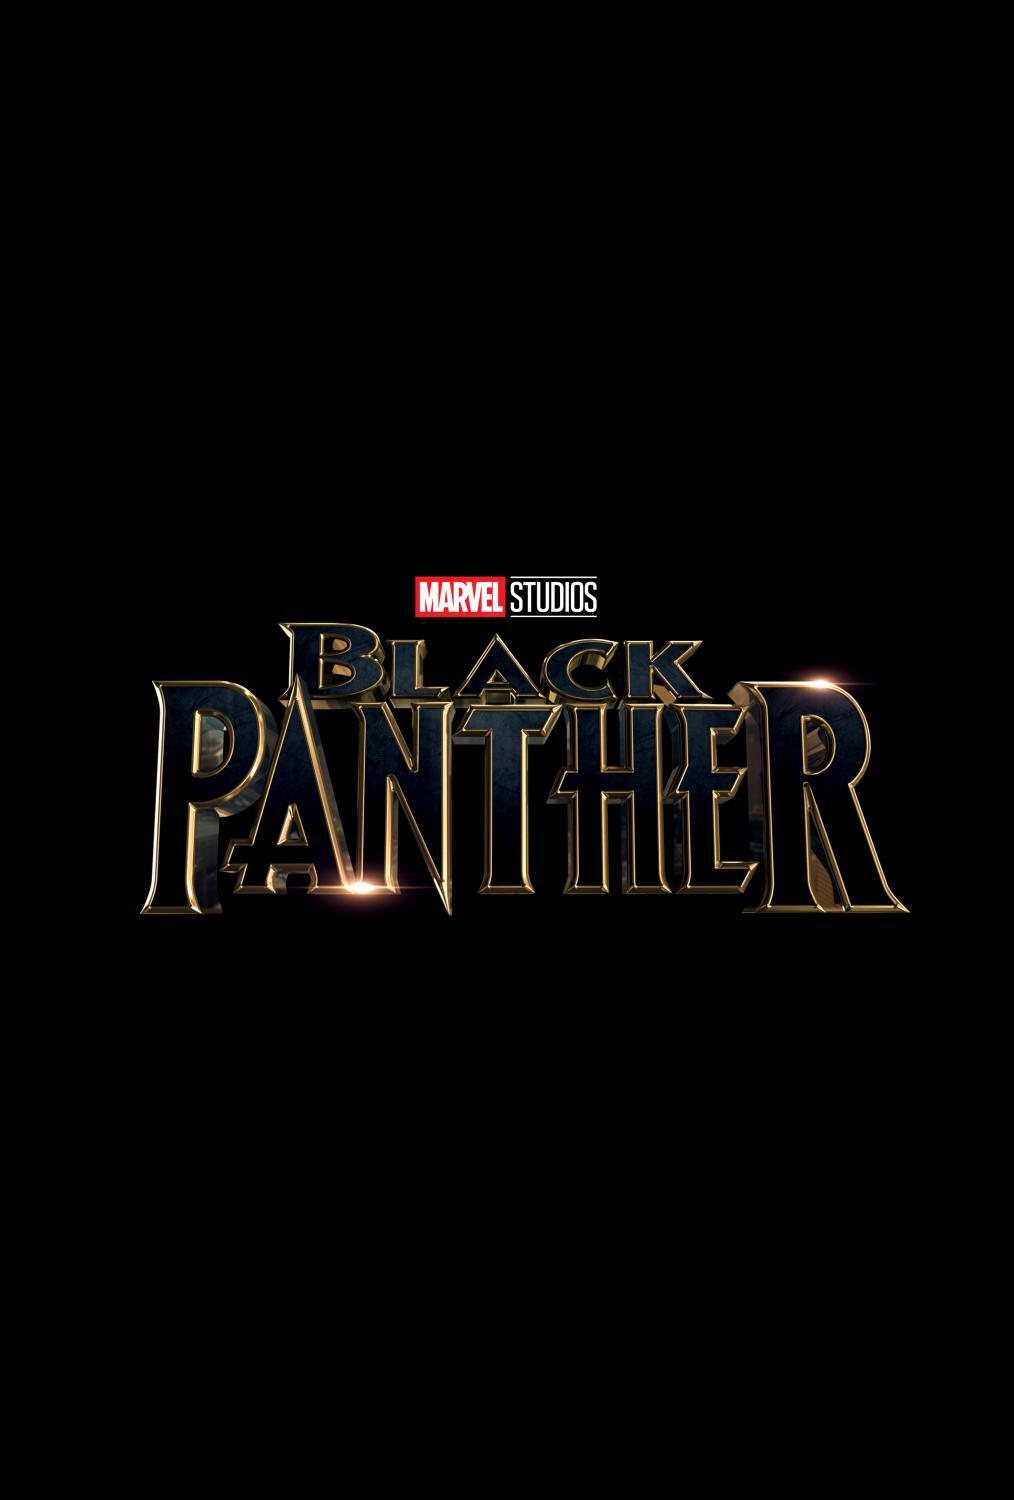 Marvel's Black Panther Teaser Trailer and Poster - First Look